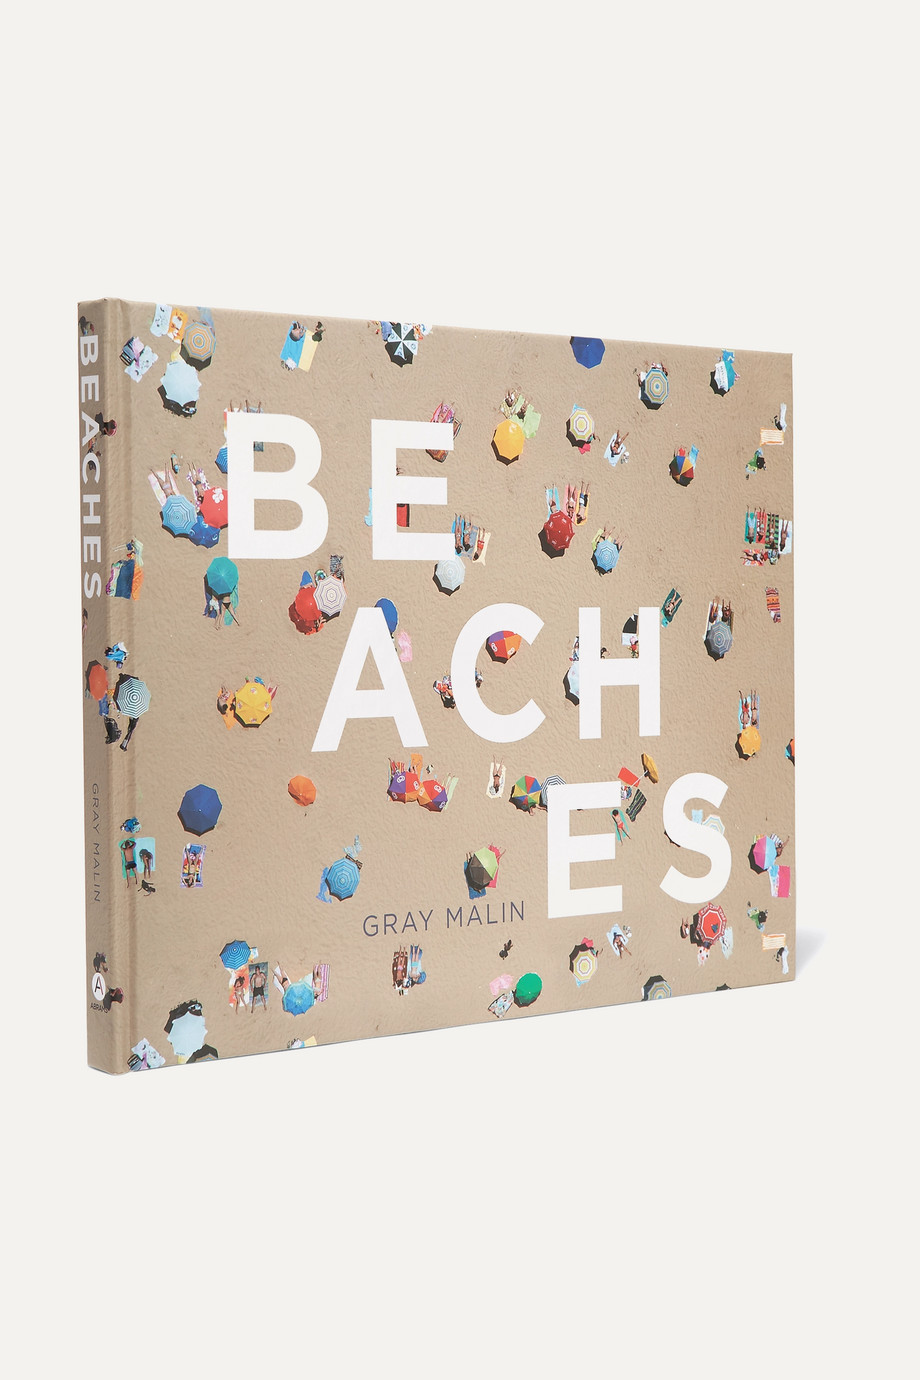 Abrams Beaches by Gray Malin hardcover book